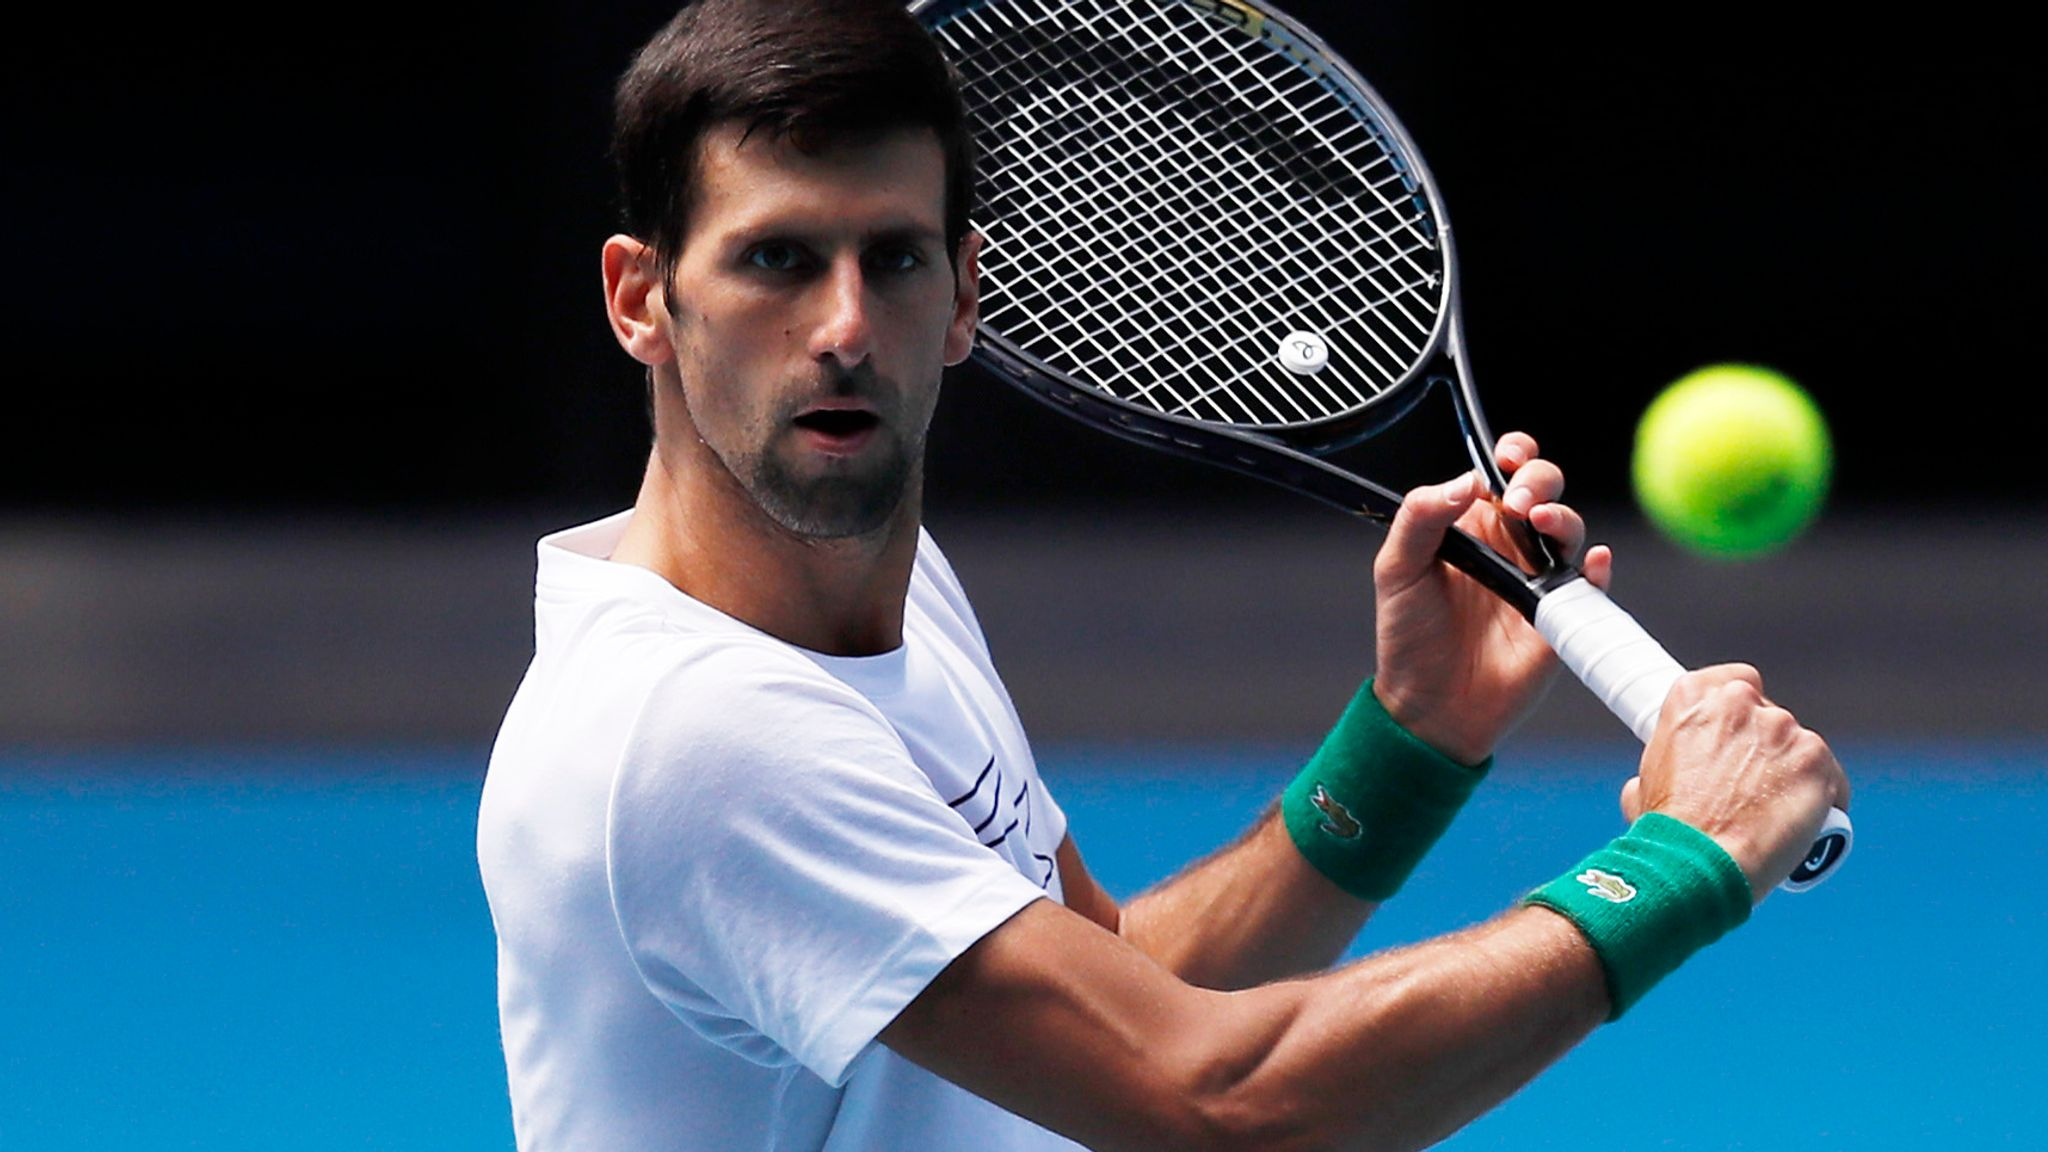 Novak Djokovic admits the Next Gen are within 'a set' of himself, Rafael Nadal and Roger Federer